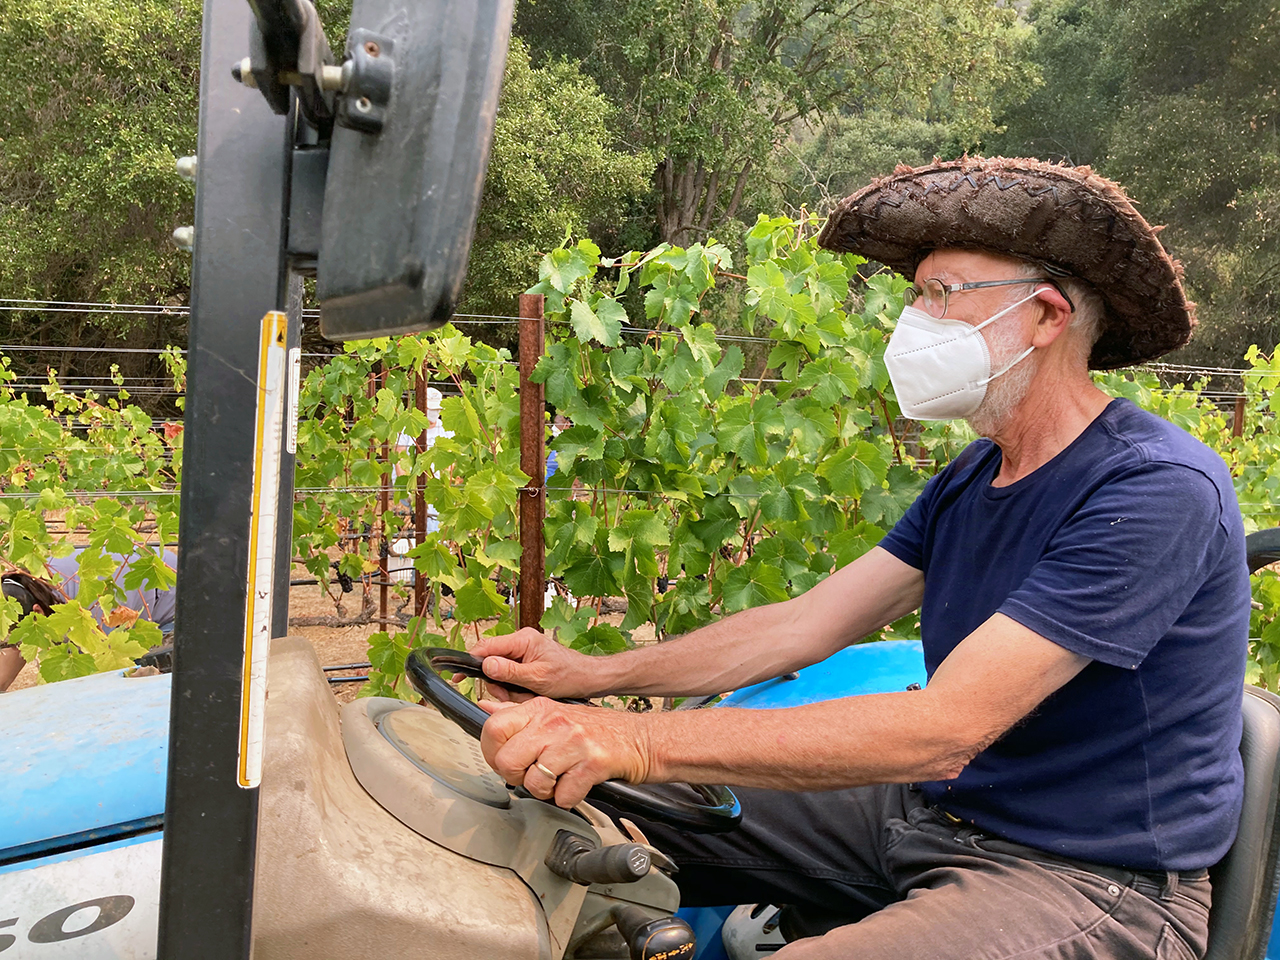 Len Lehmann, Portola Vineyards owner and winemaker, in the field in September 2020.